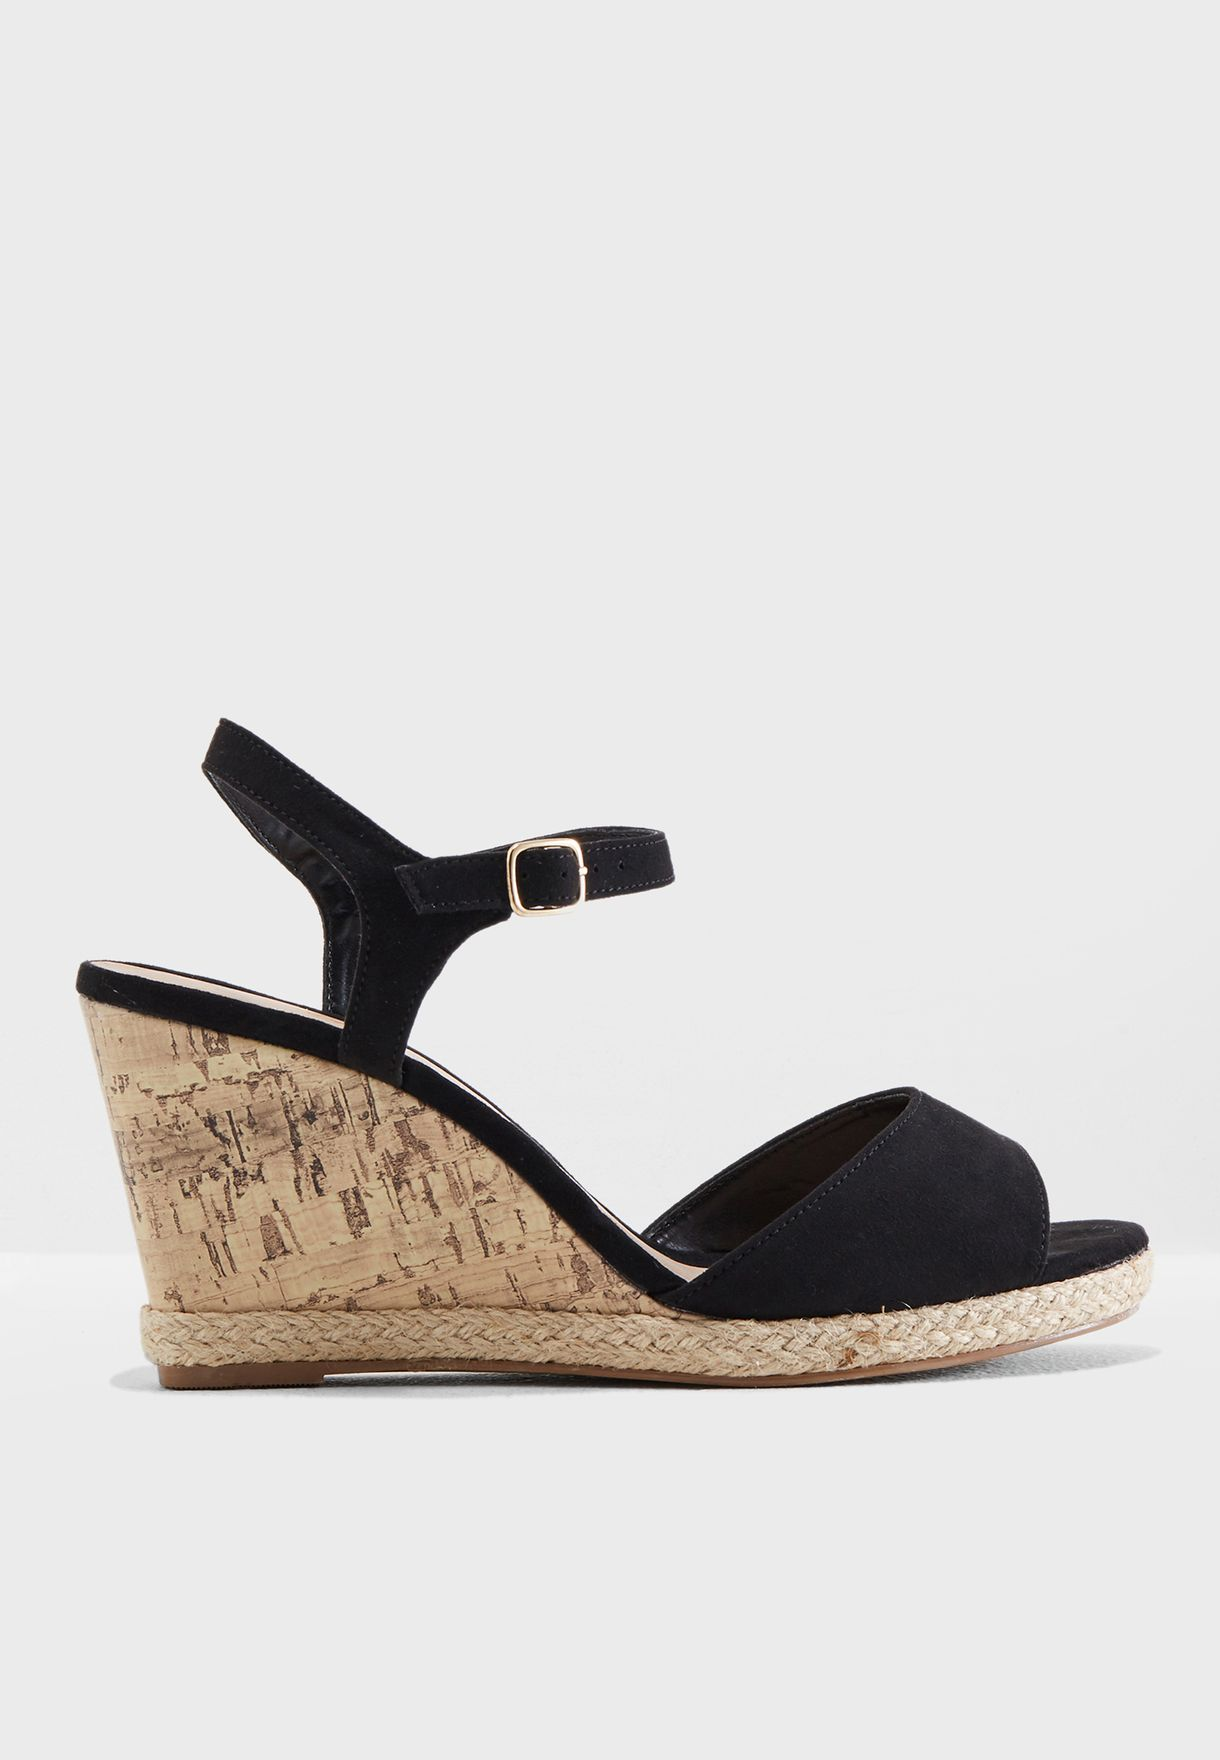 0dfe34d4fd5 Wedge Sandals